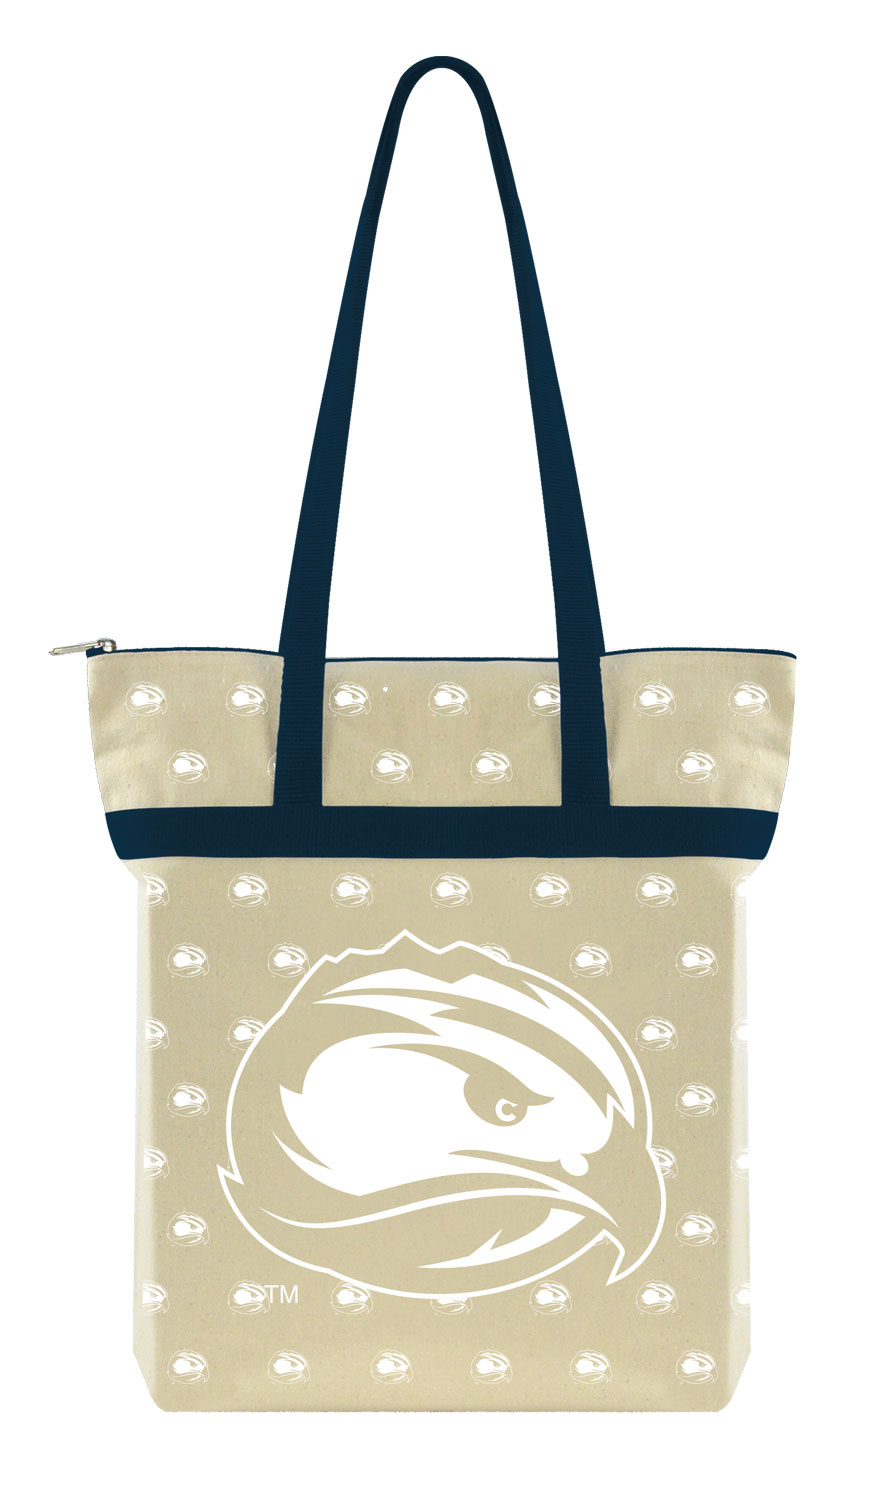 FLC Canvas Tote with Zipper